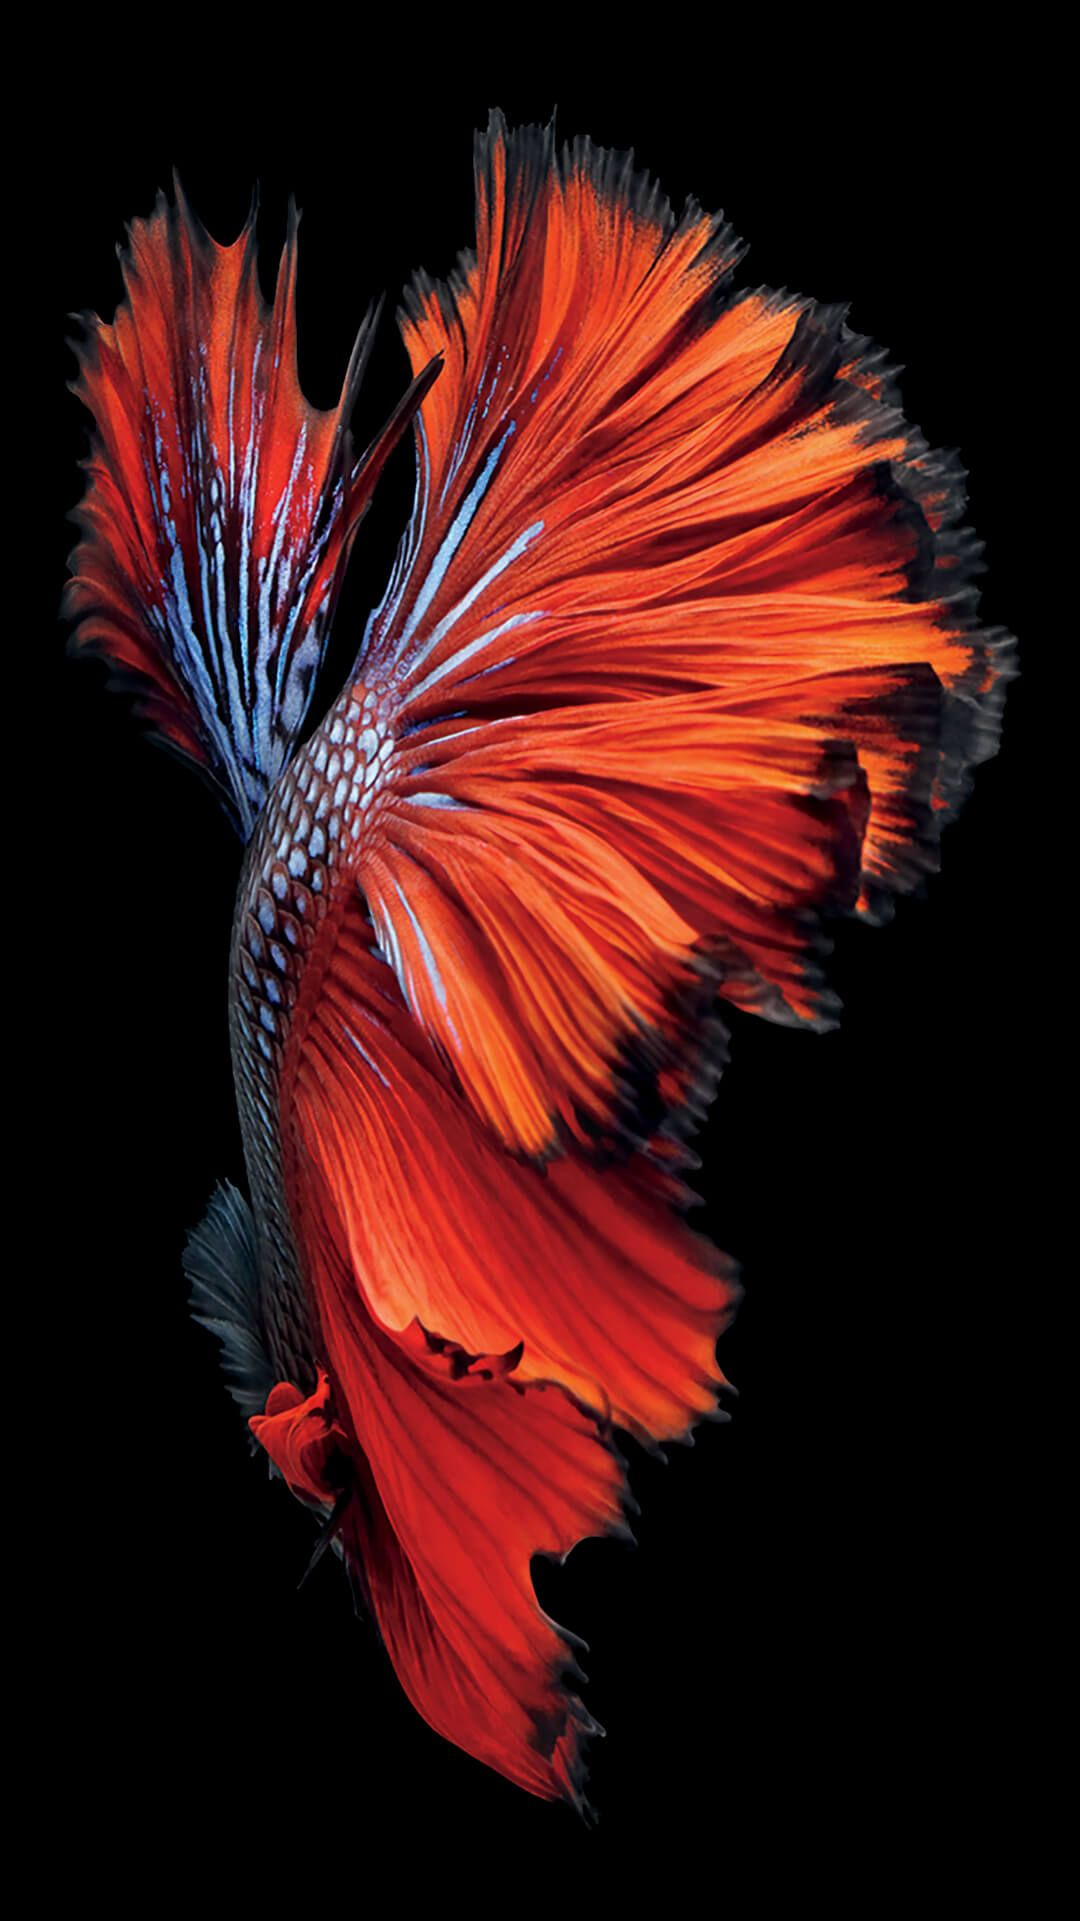 ios 10 wallpapers hd | bettas on black | pinterest | ios 10